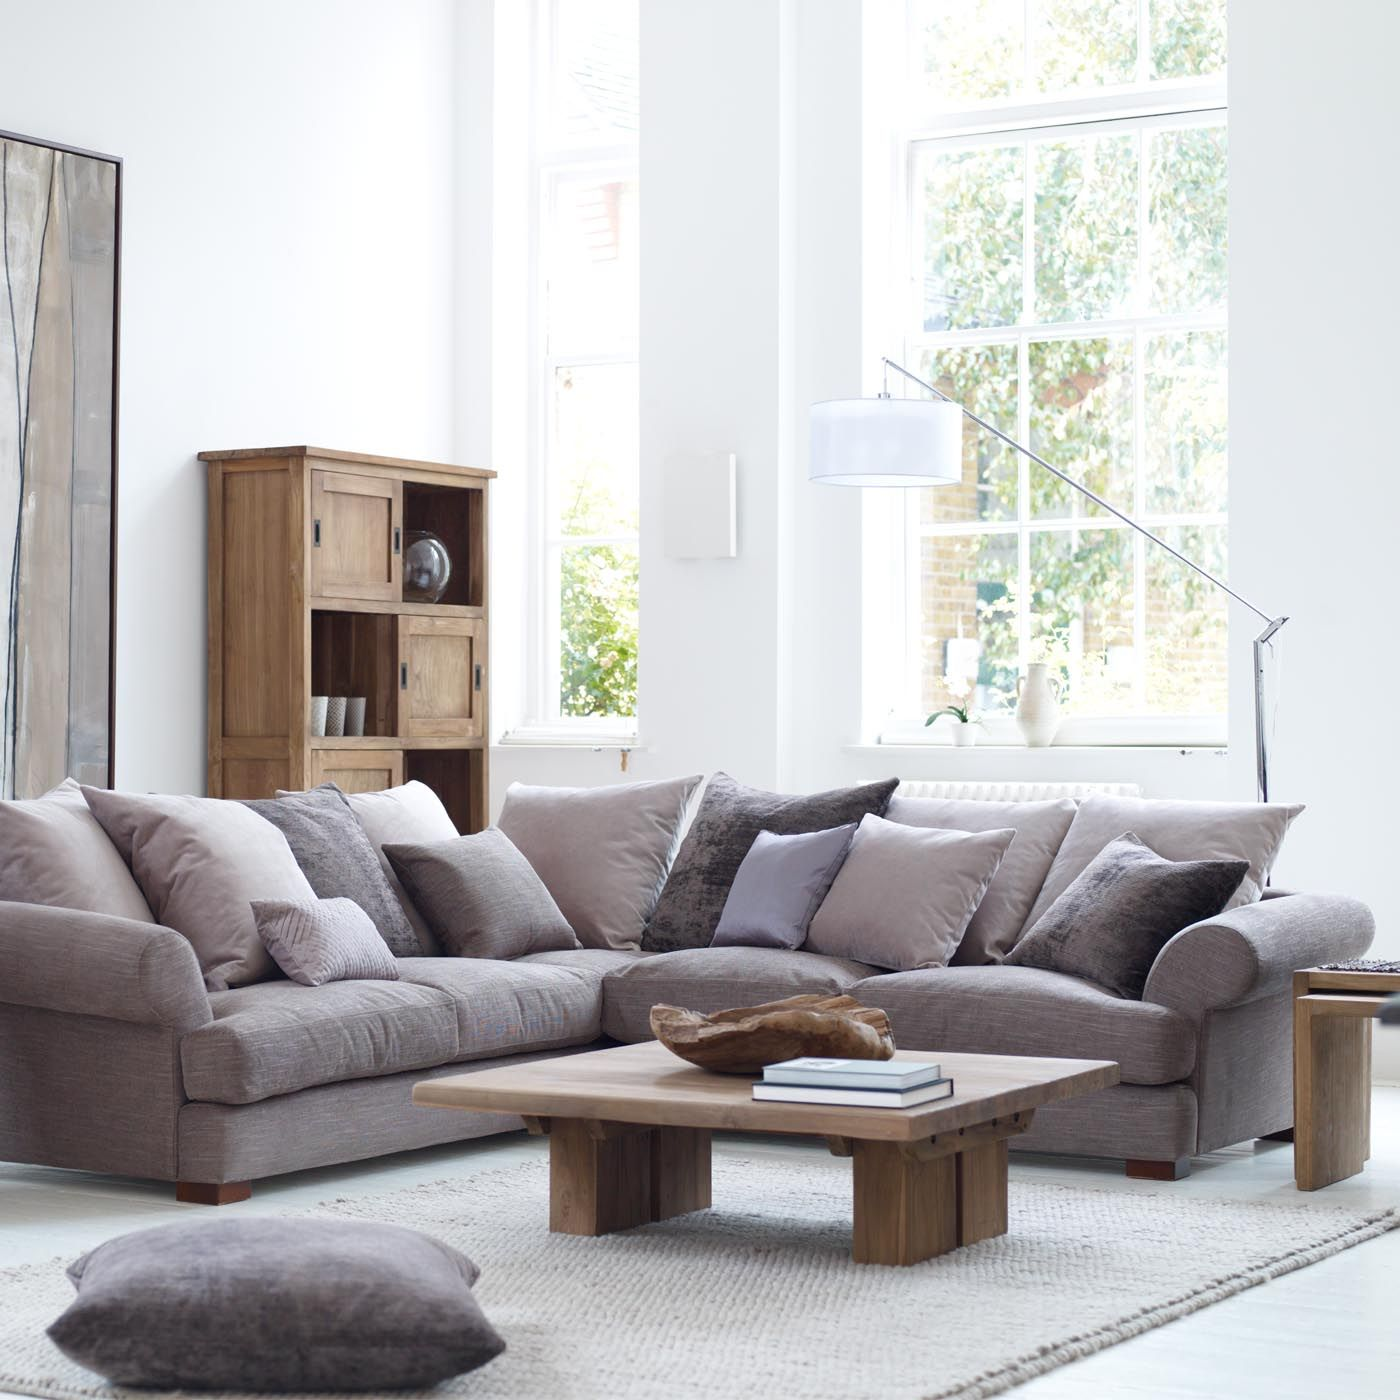 Muebles Joan Y Mari Comfy Corner Sofa With Lots Of Snuggly Cushions Home